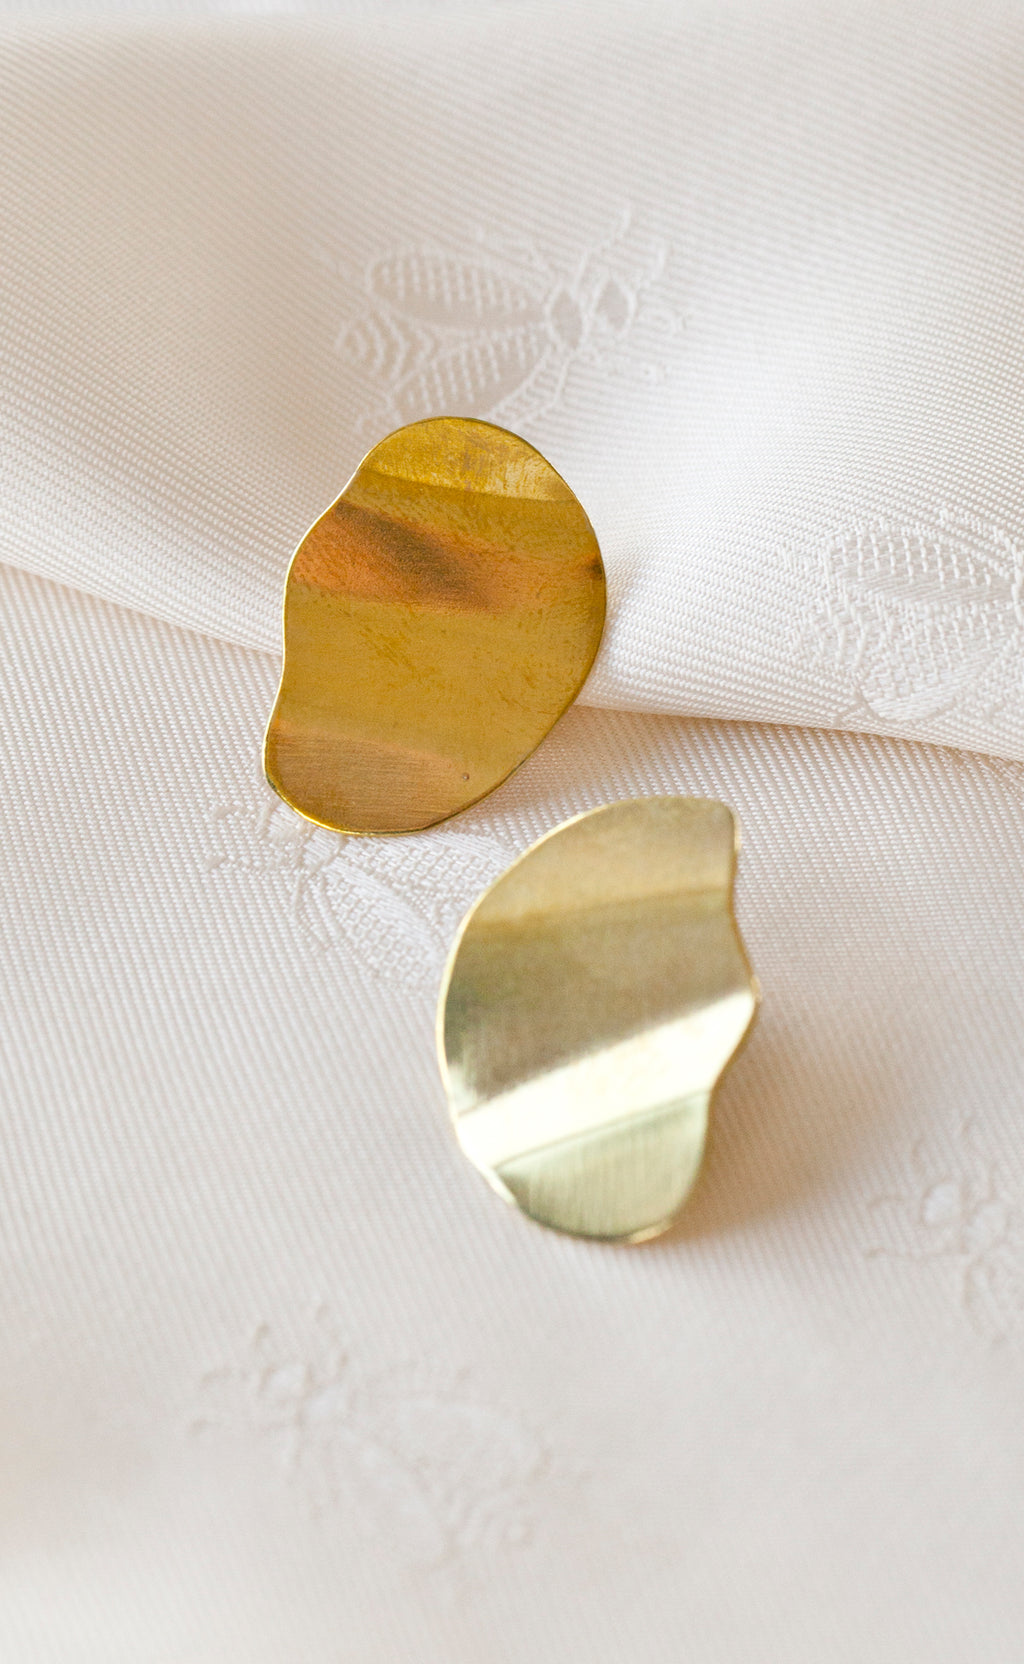 Bronze stud earrings in oval rippled shape hand made in Puerto Rico